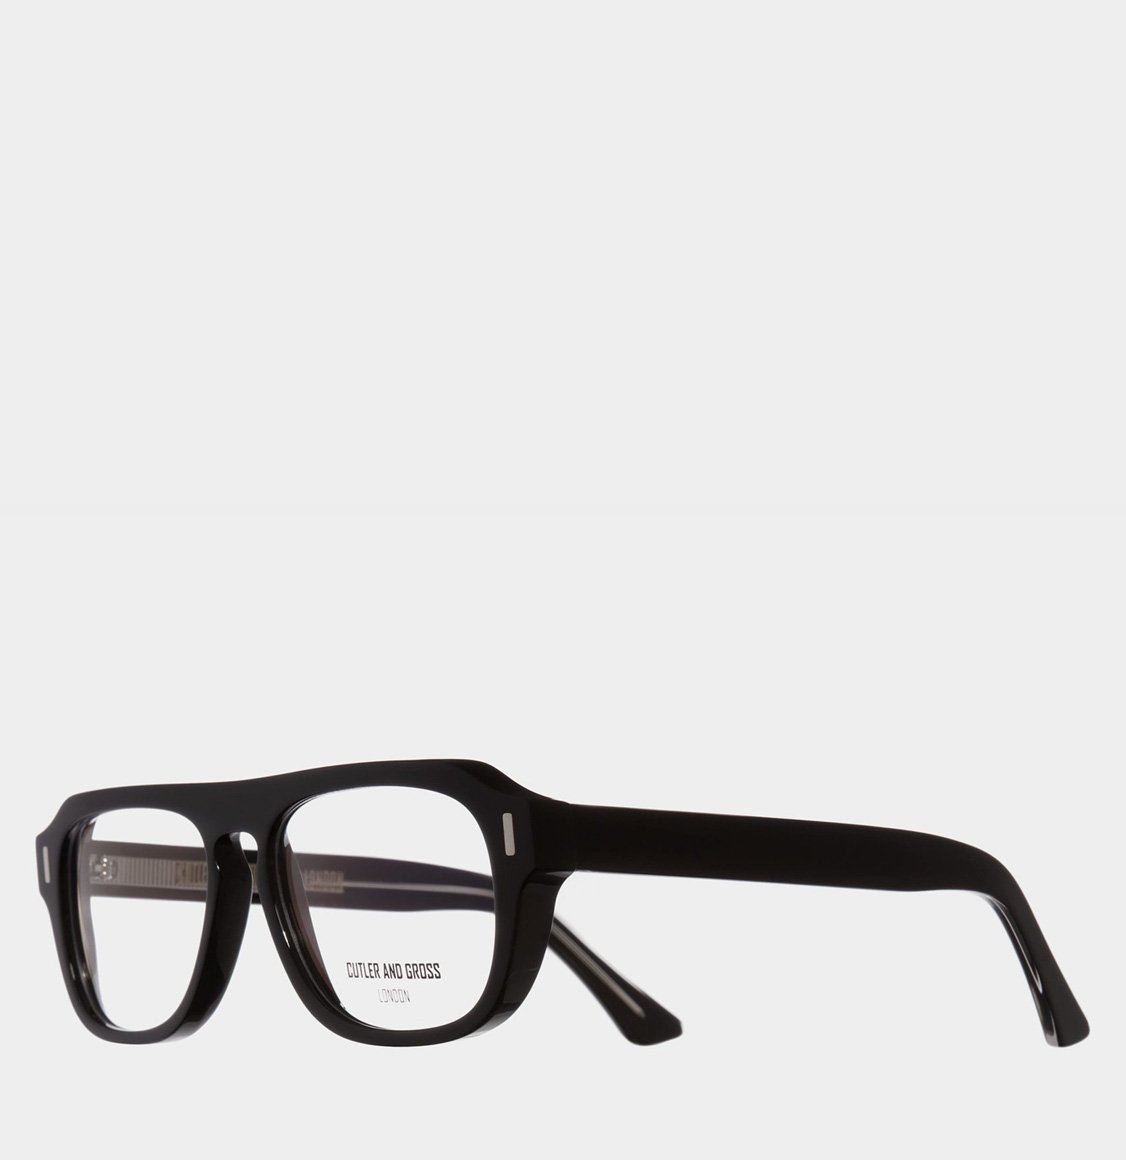 Cutler and Gross Square-Frame Black Acetate Optical Glasses